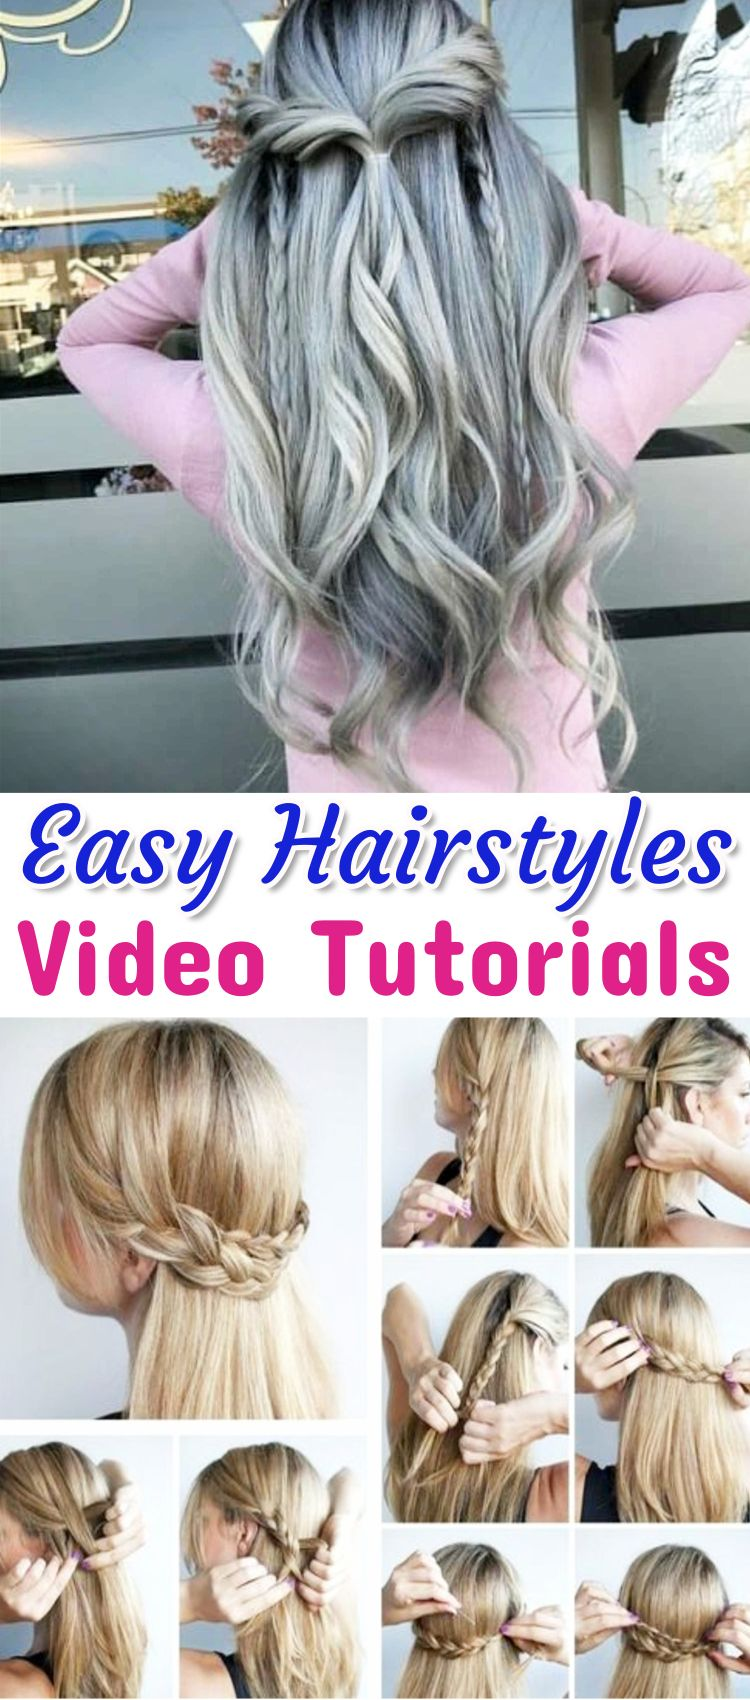 10 Easy Lazy Girl Hairstyle Ideas Step By Step Video Tutorials For Lazy Day Running Late Quick Hairstyles Clever Diy Ideas Lazy Girl Hairstyles Easy Everyday Hairstyles Easy Hairstyles